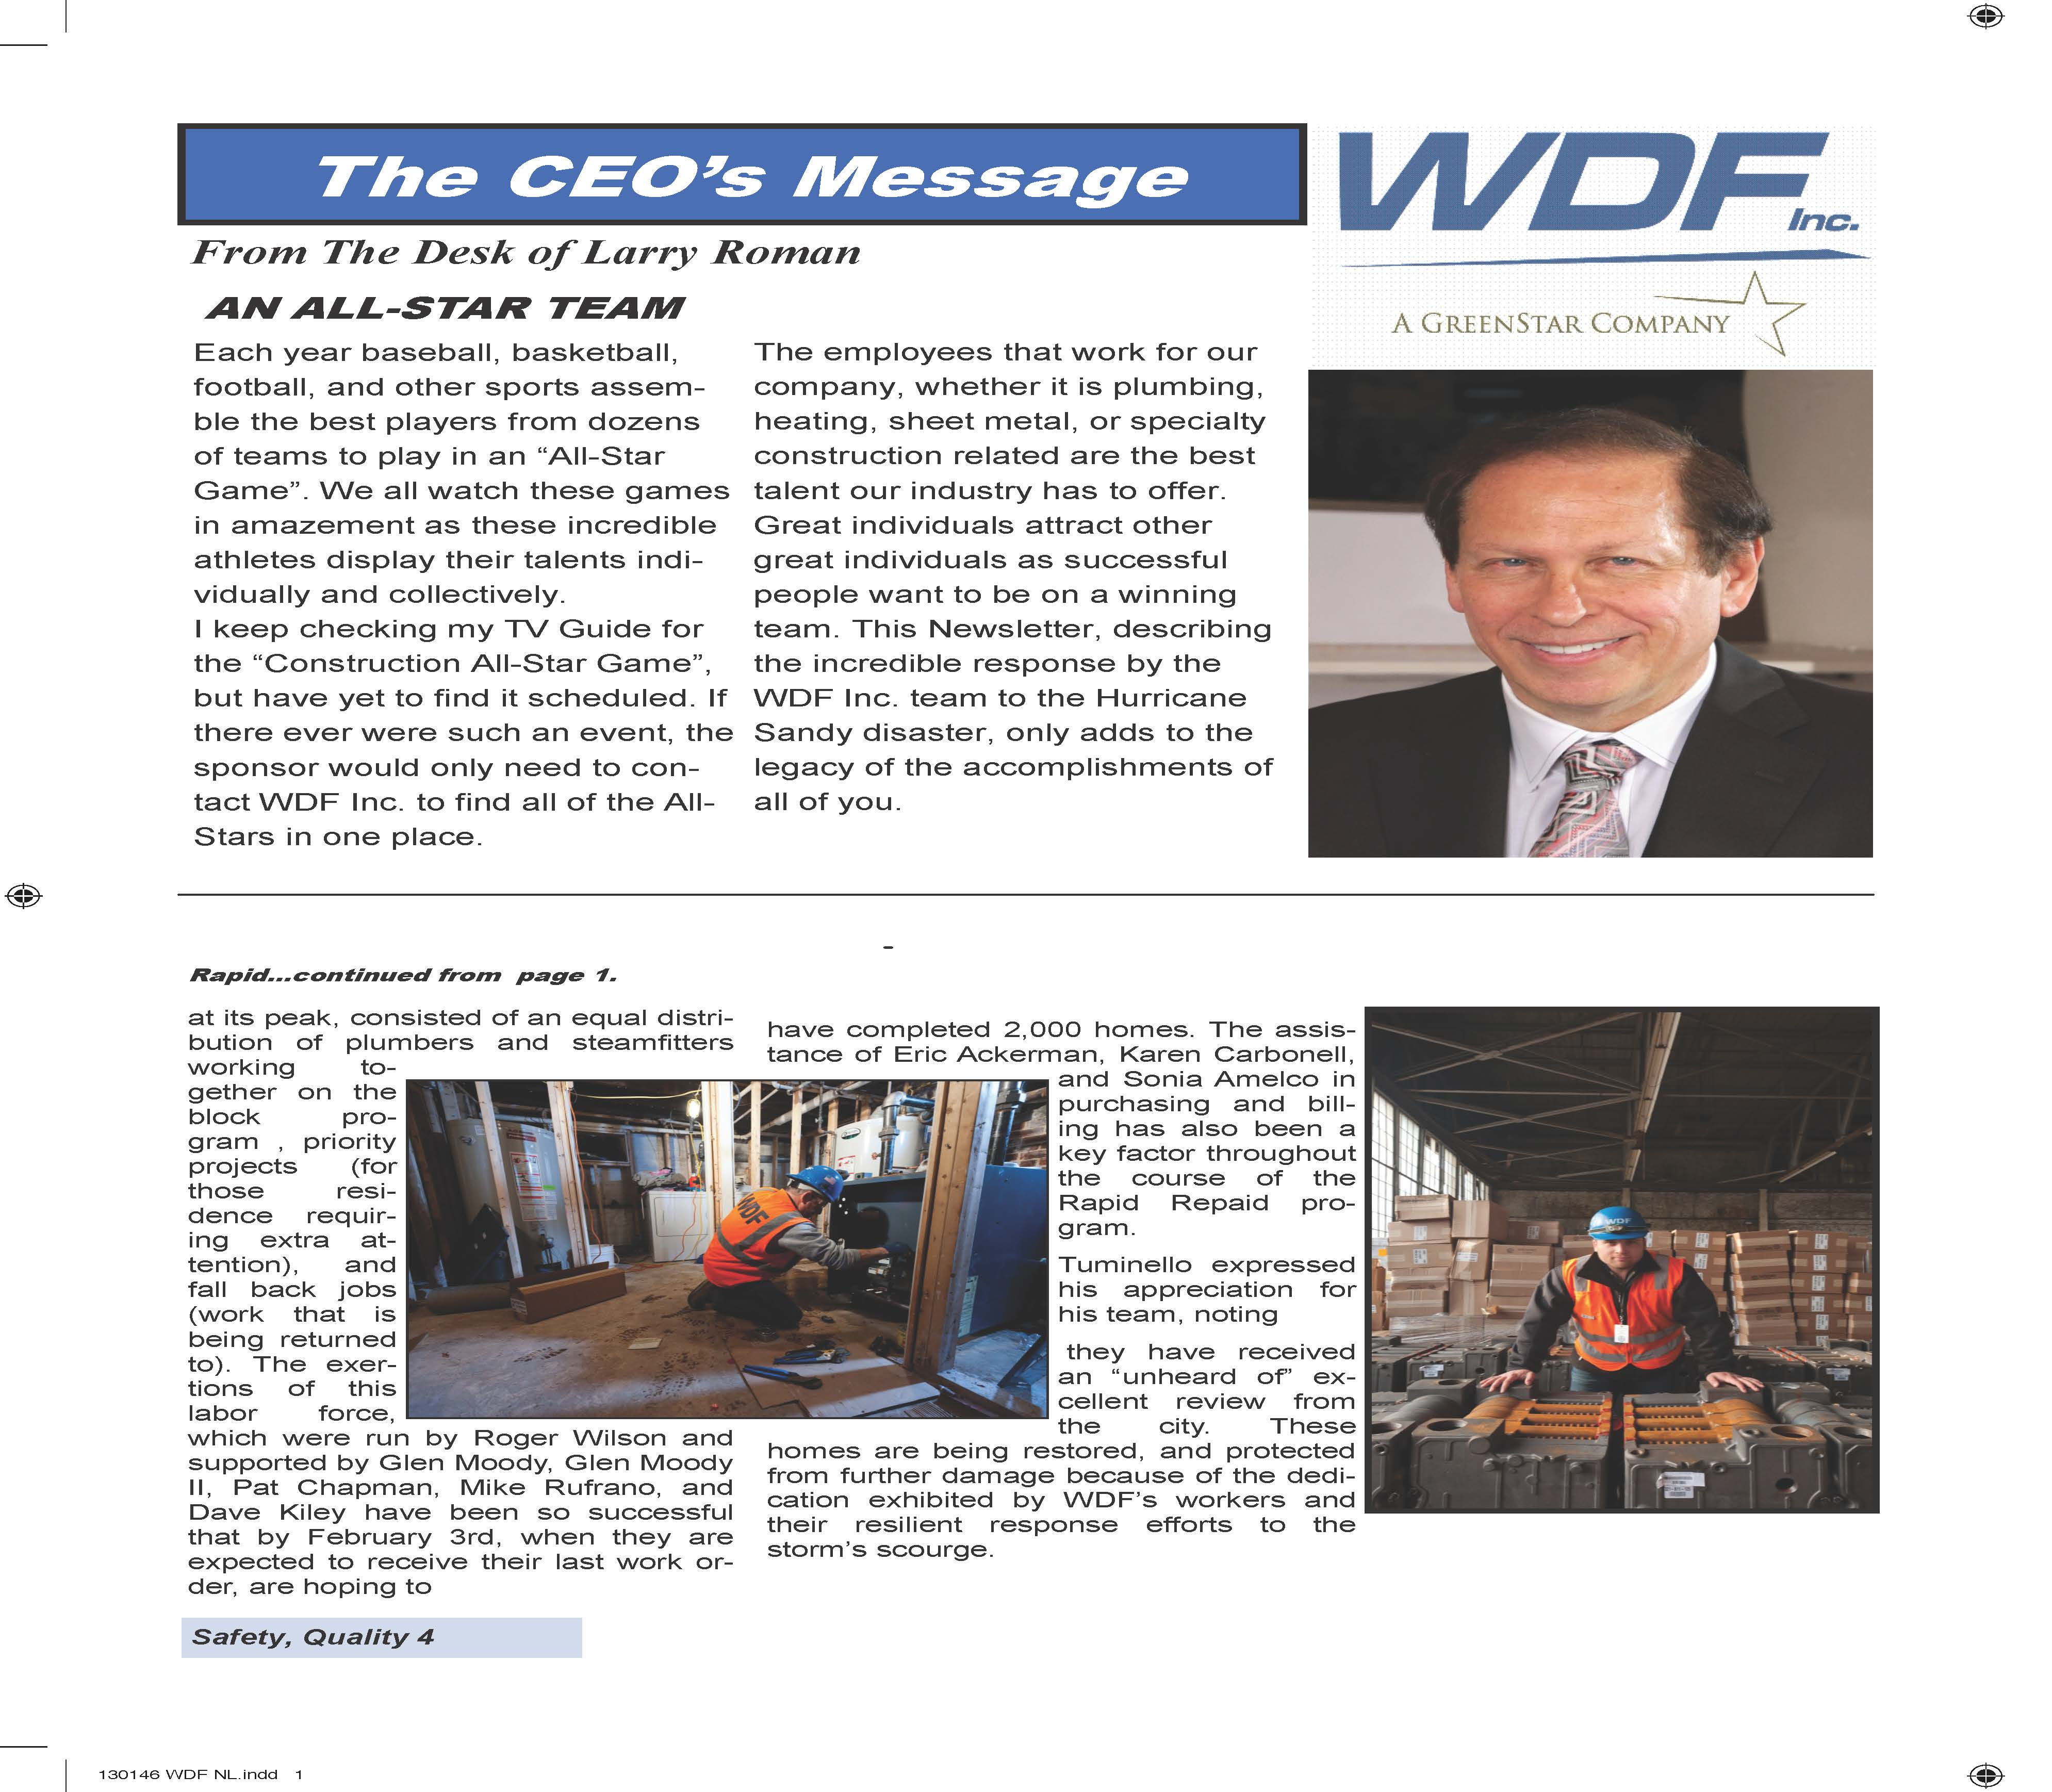 wdf inc new projects dom tower newsletter 376kb hofstra university honors larry r and joe locurto at golf fundraiser